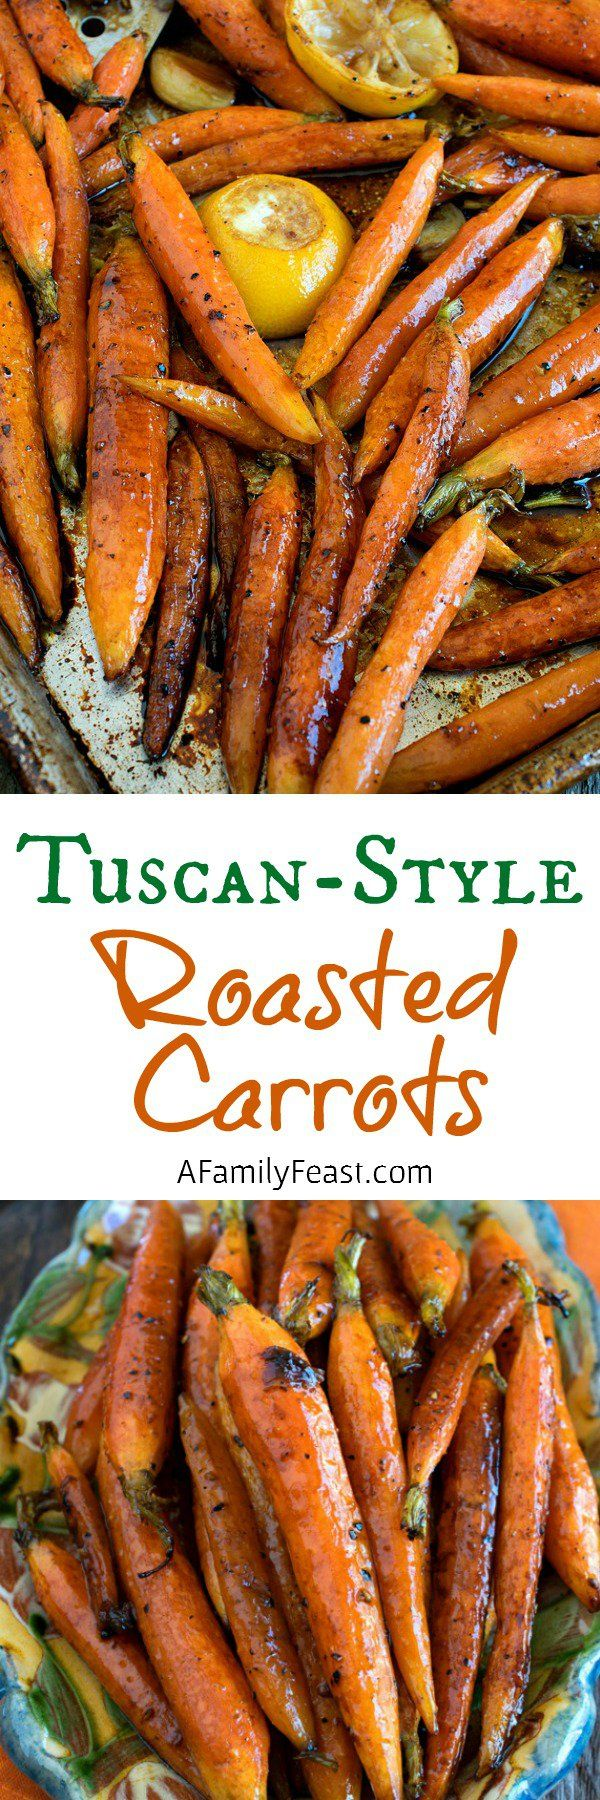 Tuscan-Style Roasted Carrots - A fantastic side dish recipe that will make any  Thanksgiving, Christmas, or Friendsgiving meal even better. #CasseroleCravings #sponsored by www.delmonte.com